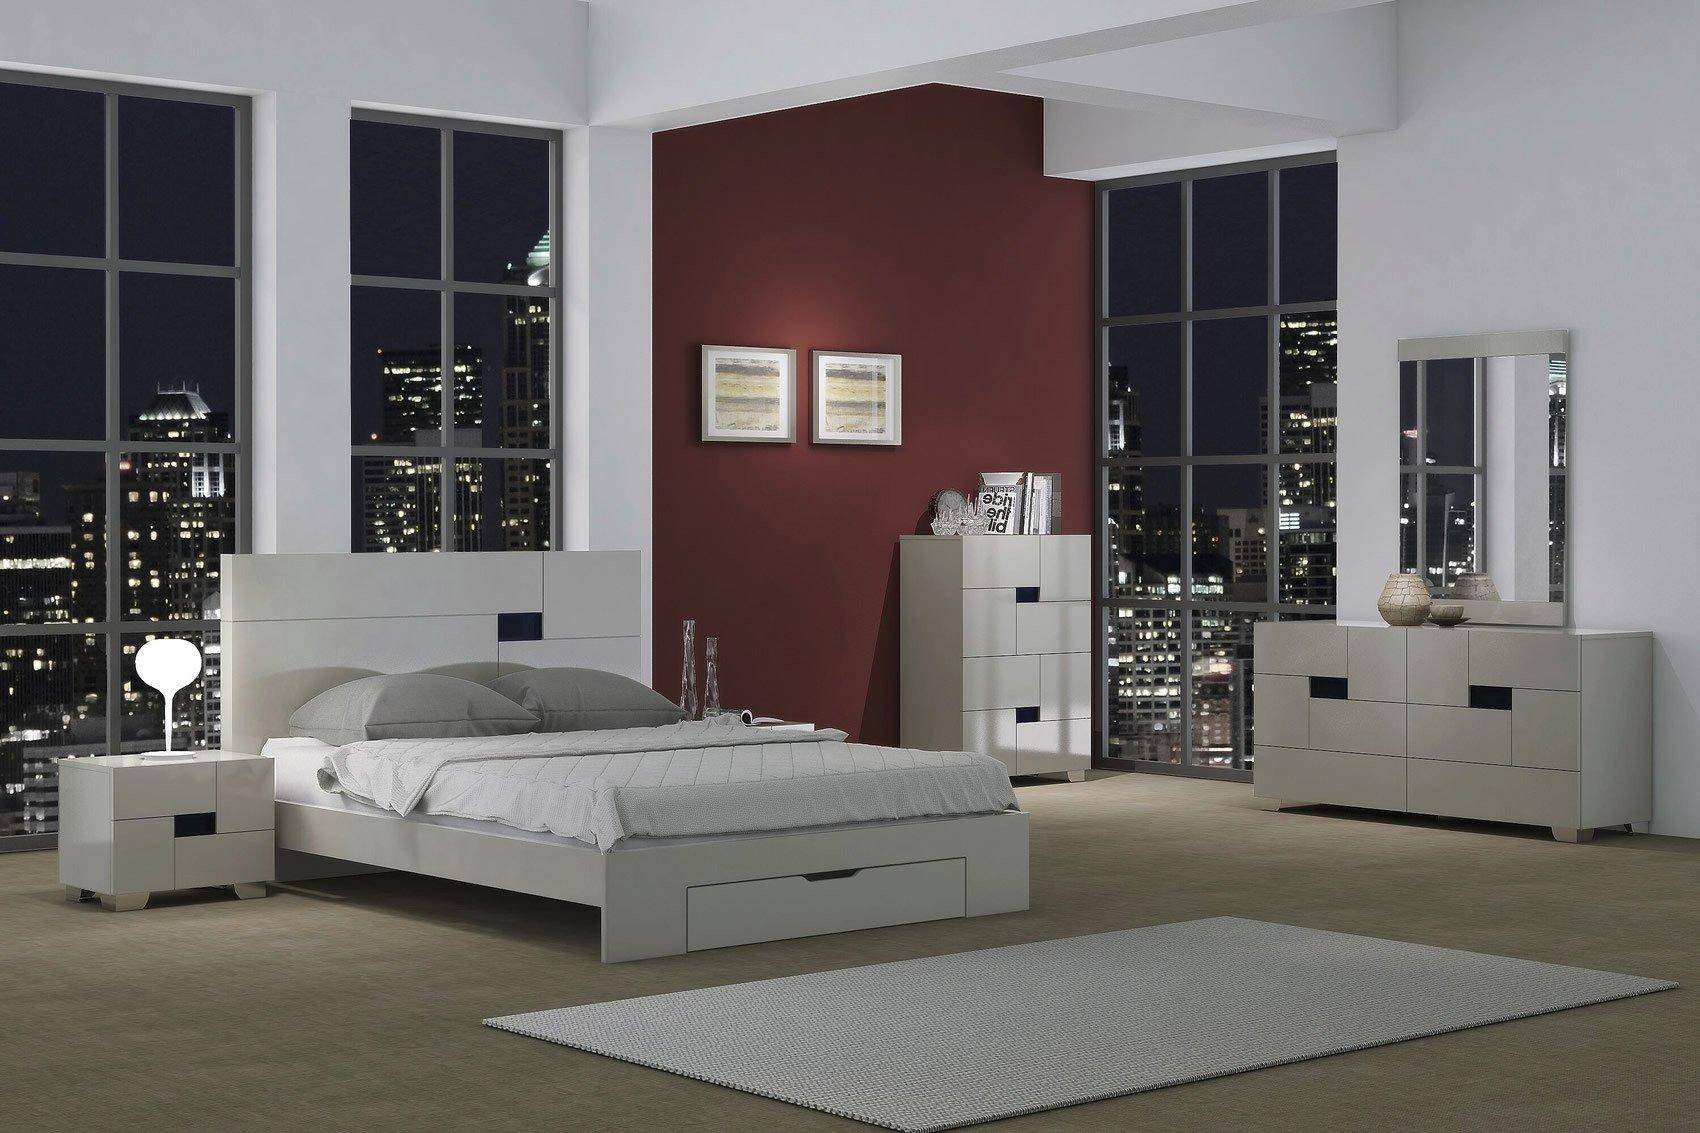 White Lacquer Bedroom Set Lovely Contemporary Light Gray Lacquer Storage Queen Bedroom Set